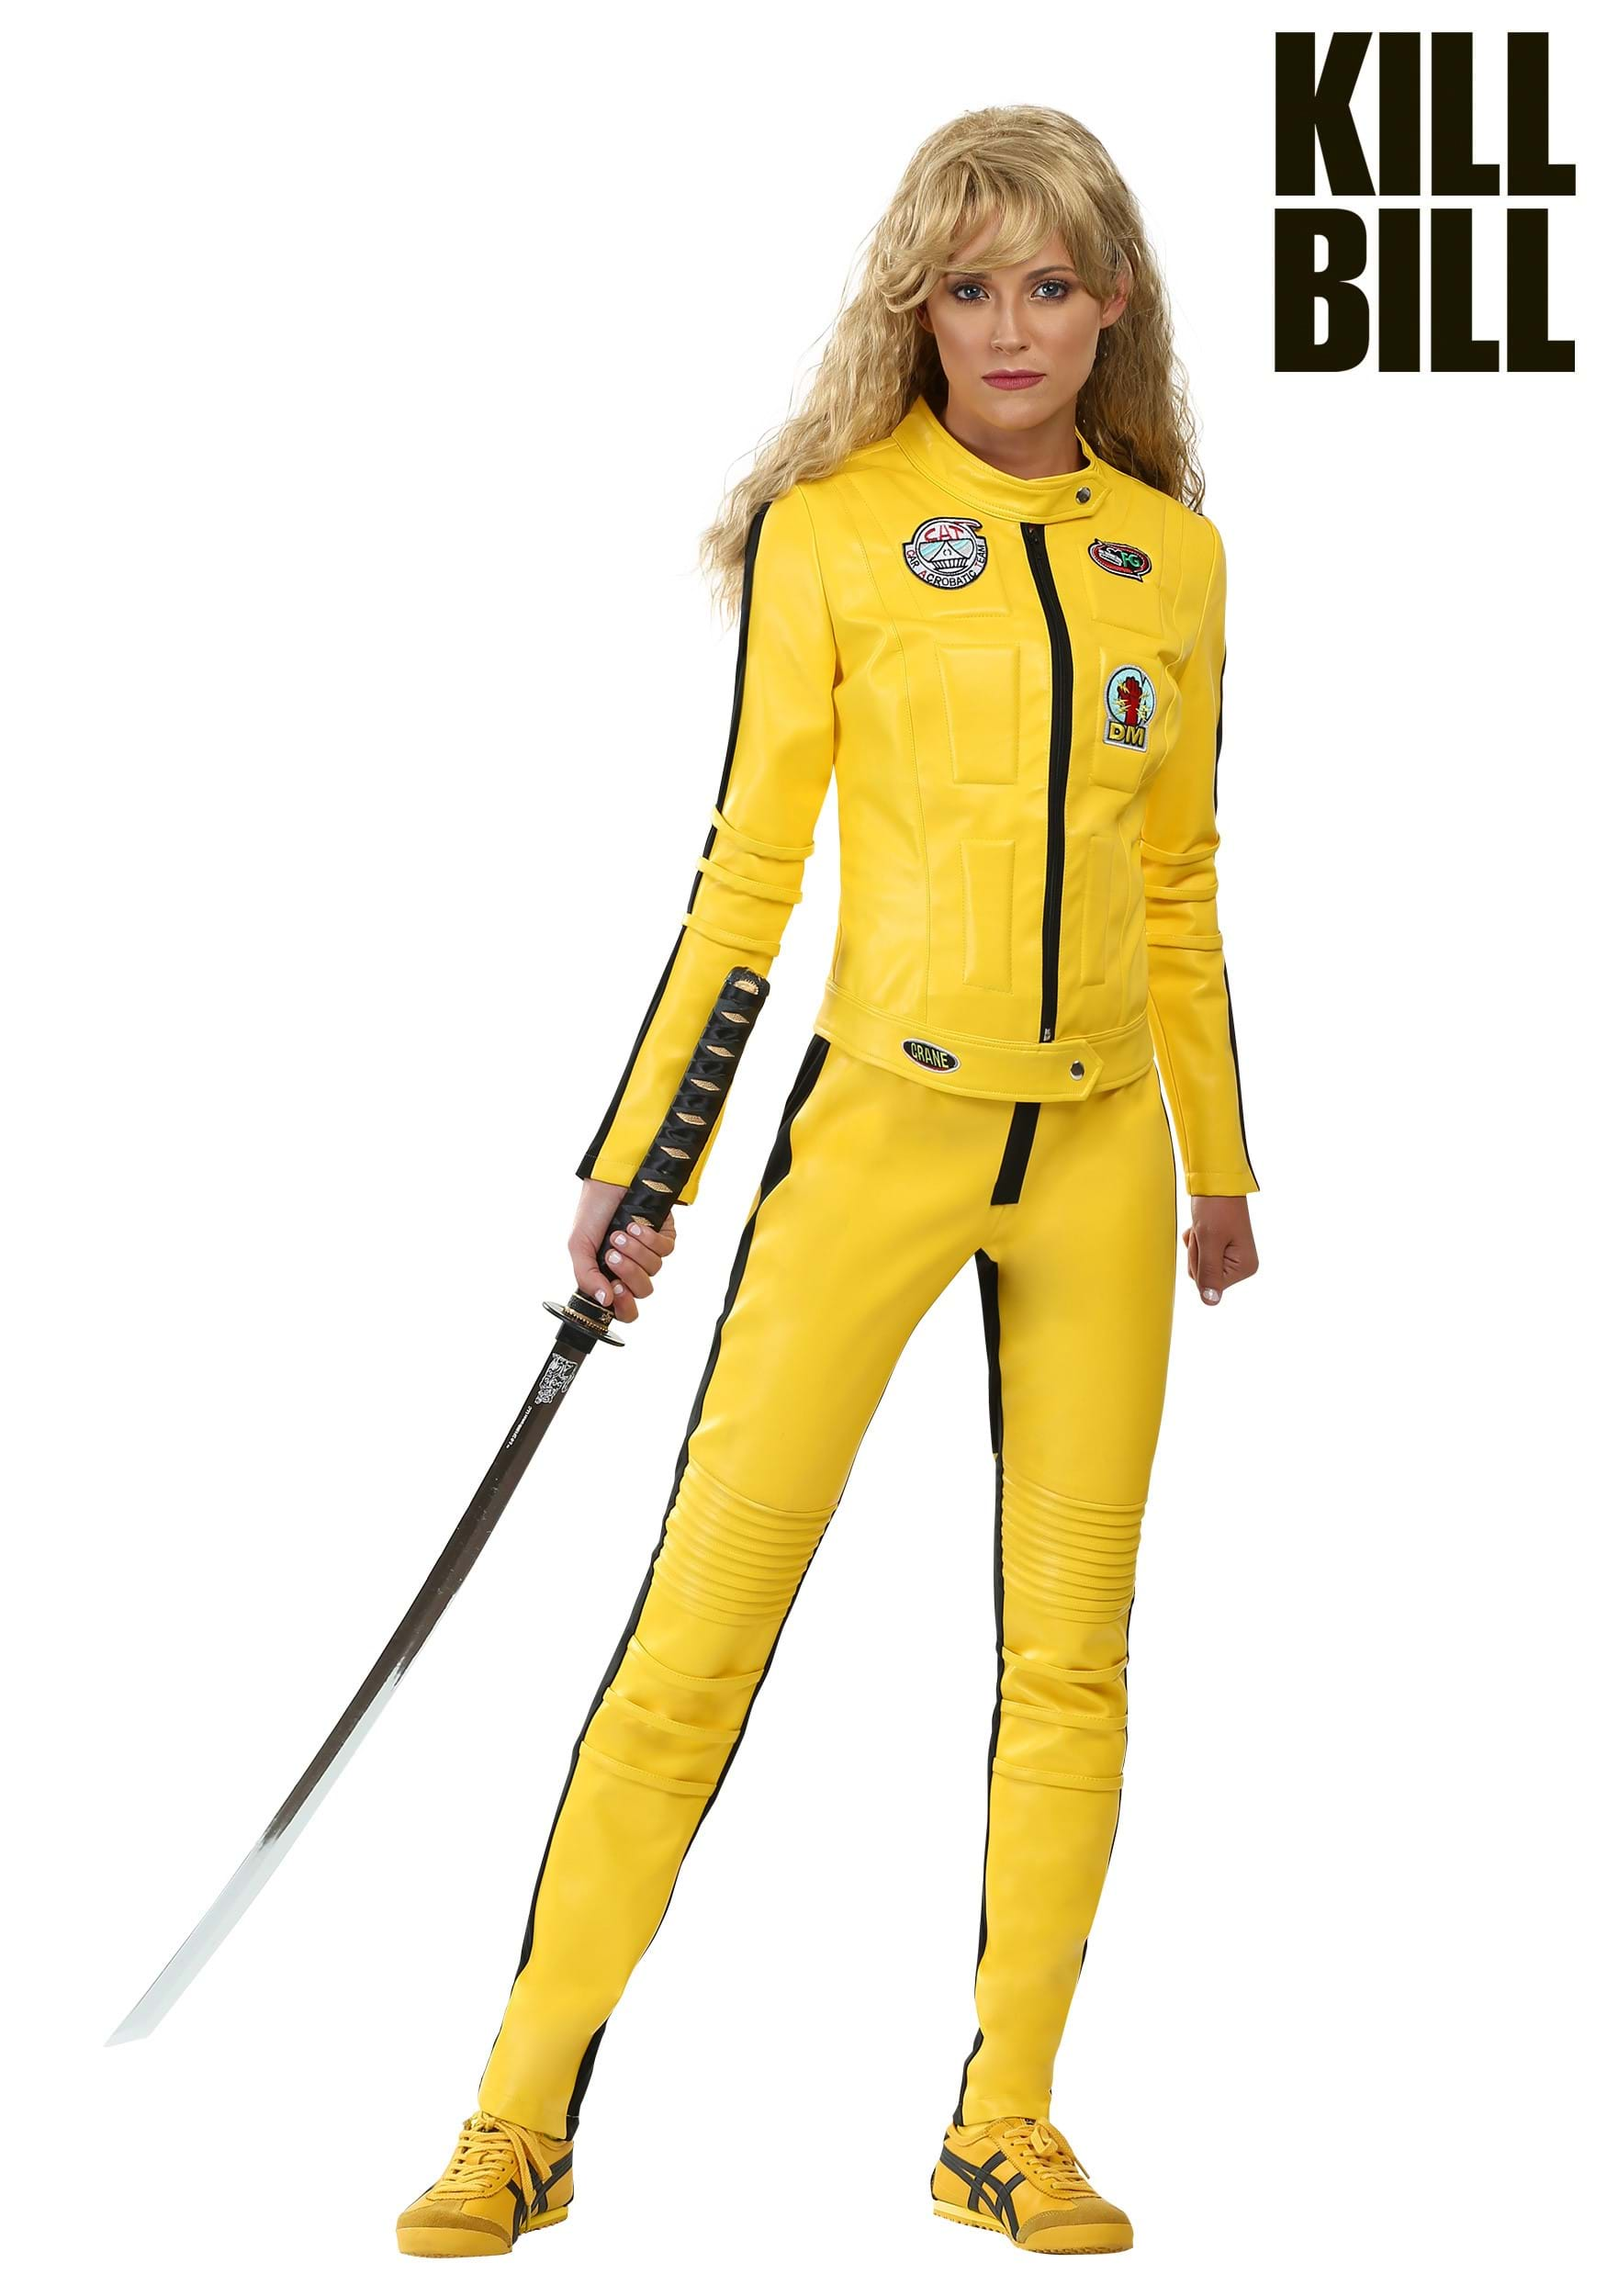 kill bill beatrix kiddo motorcycle suit costume